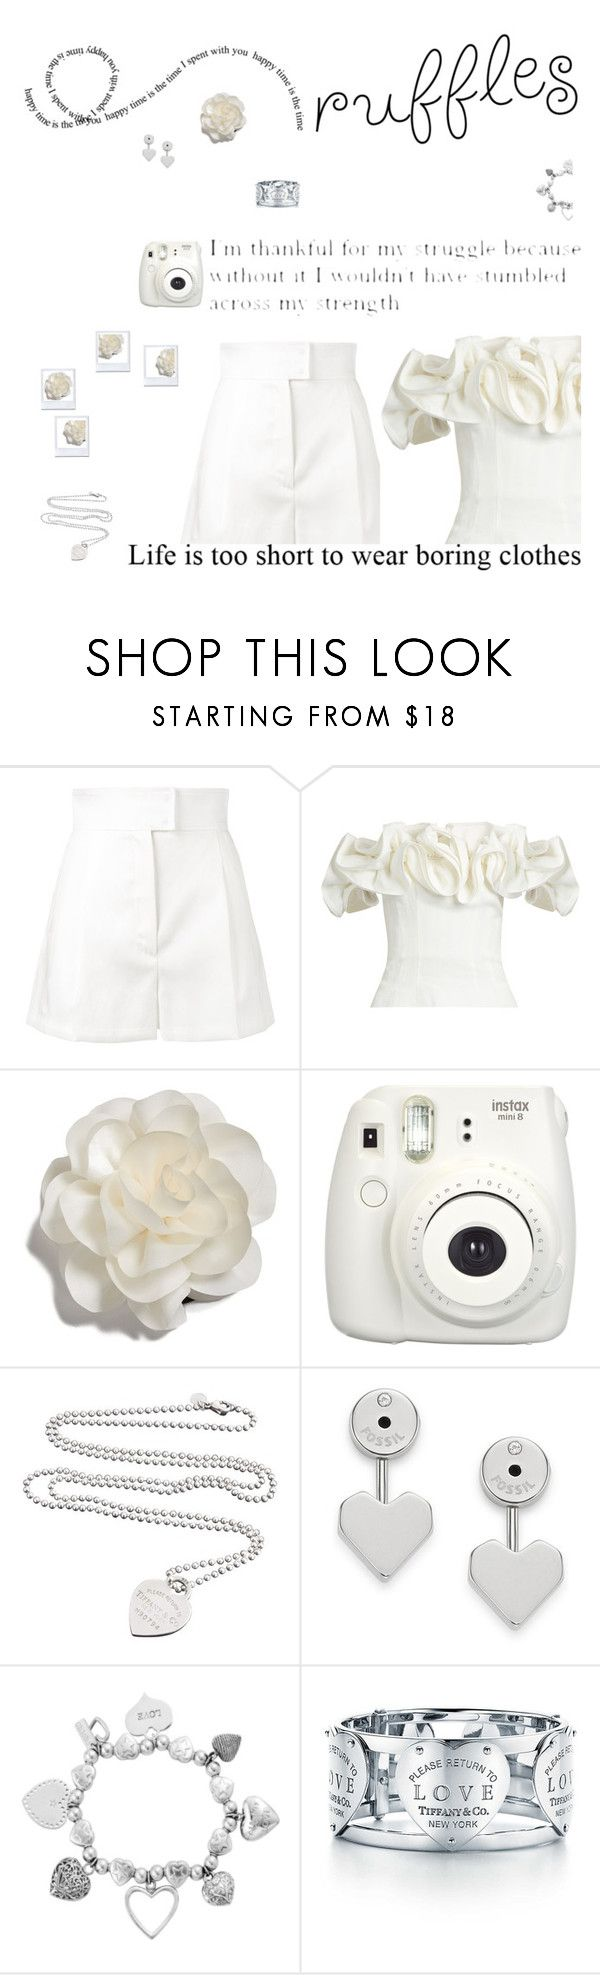 """Ruffles"" by dory-speaks-whale ❤ liked on Polyvore featuring Barbara Casasola, Brock Collection, Cara, Fujifilm, Tiffany & Co., FOSSIL and ChloBo"